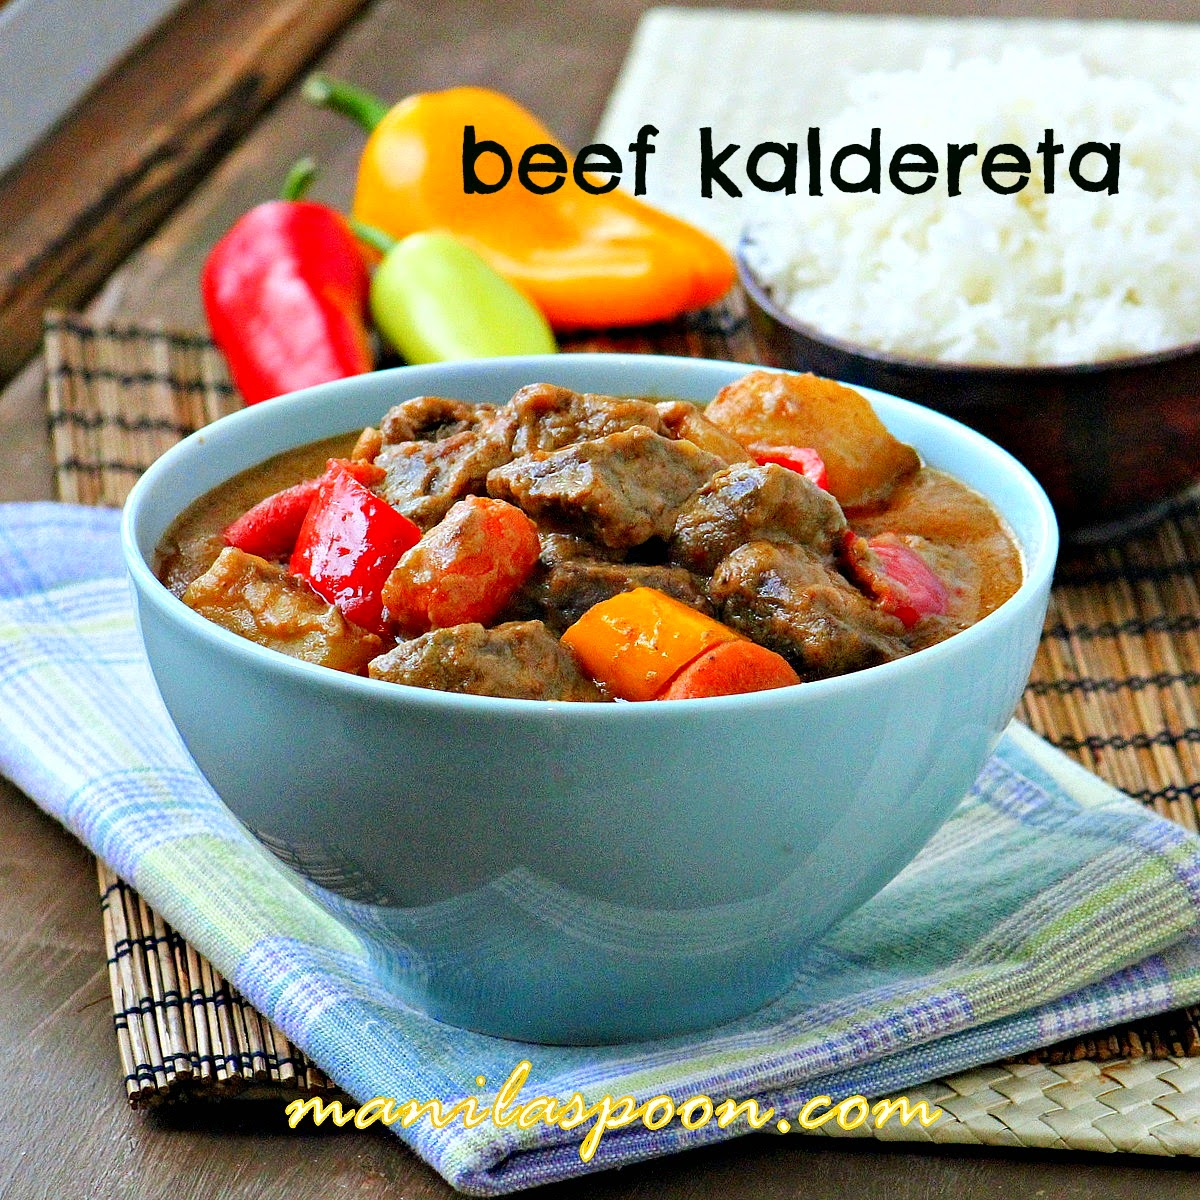 Kaldereta (Beef Stew in Coconut Milk)